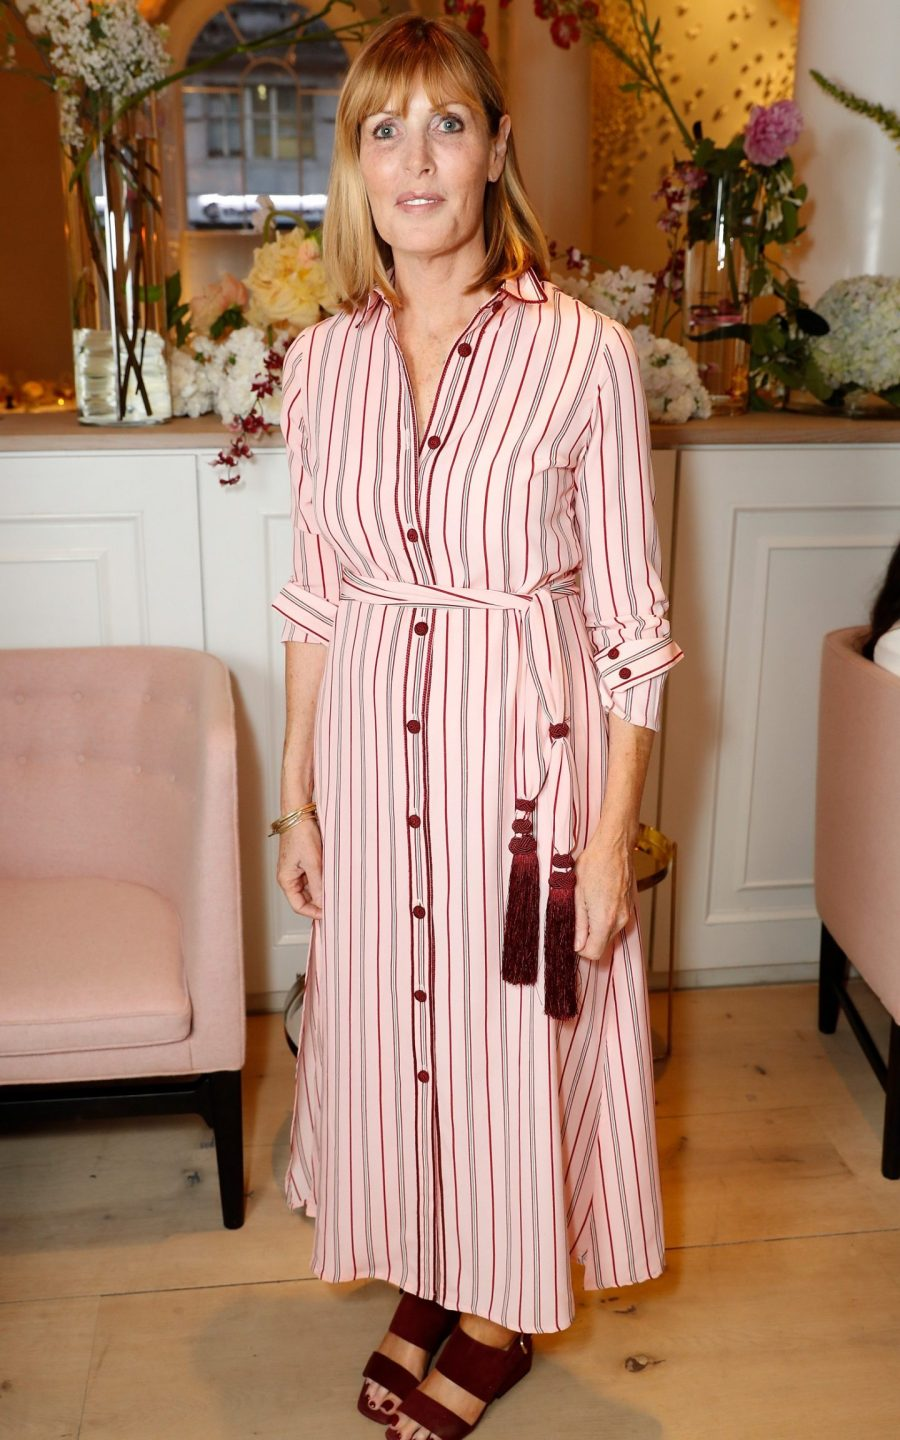 Skye Gyngell at the Wildsmith Skin launch dinner wearing a pink dress